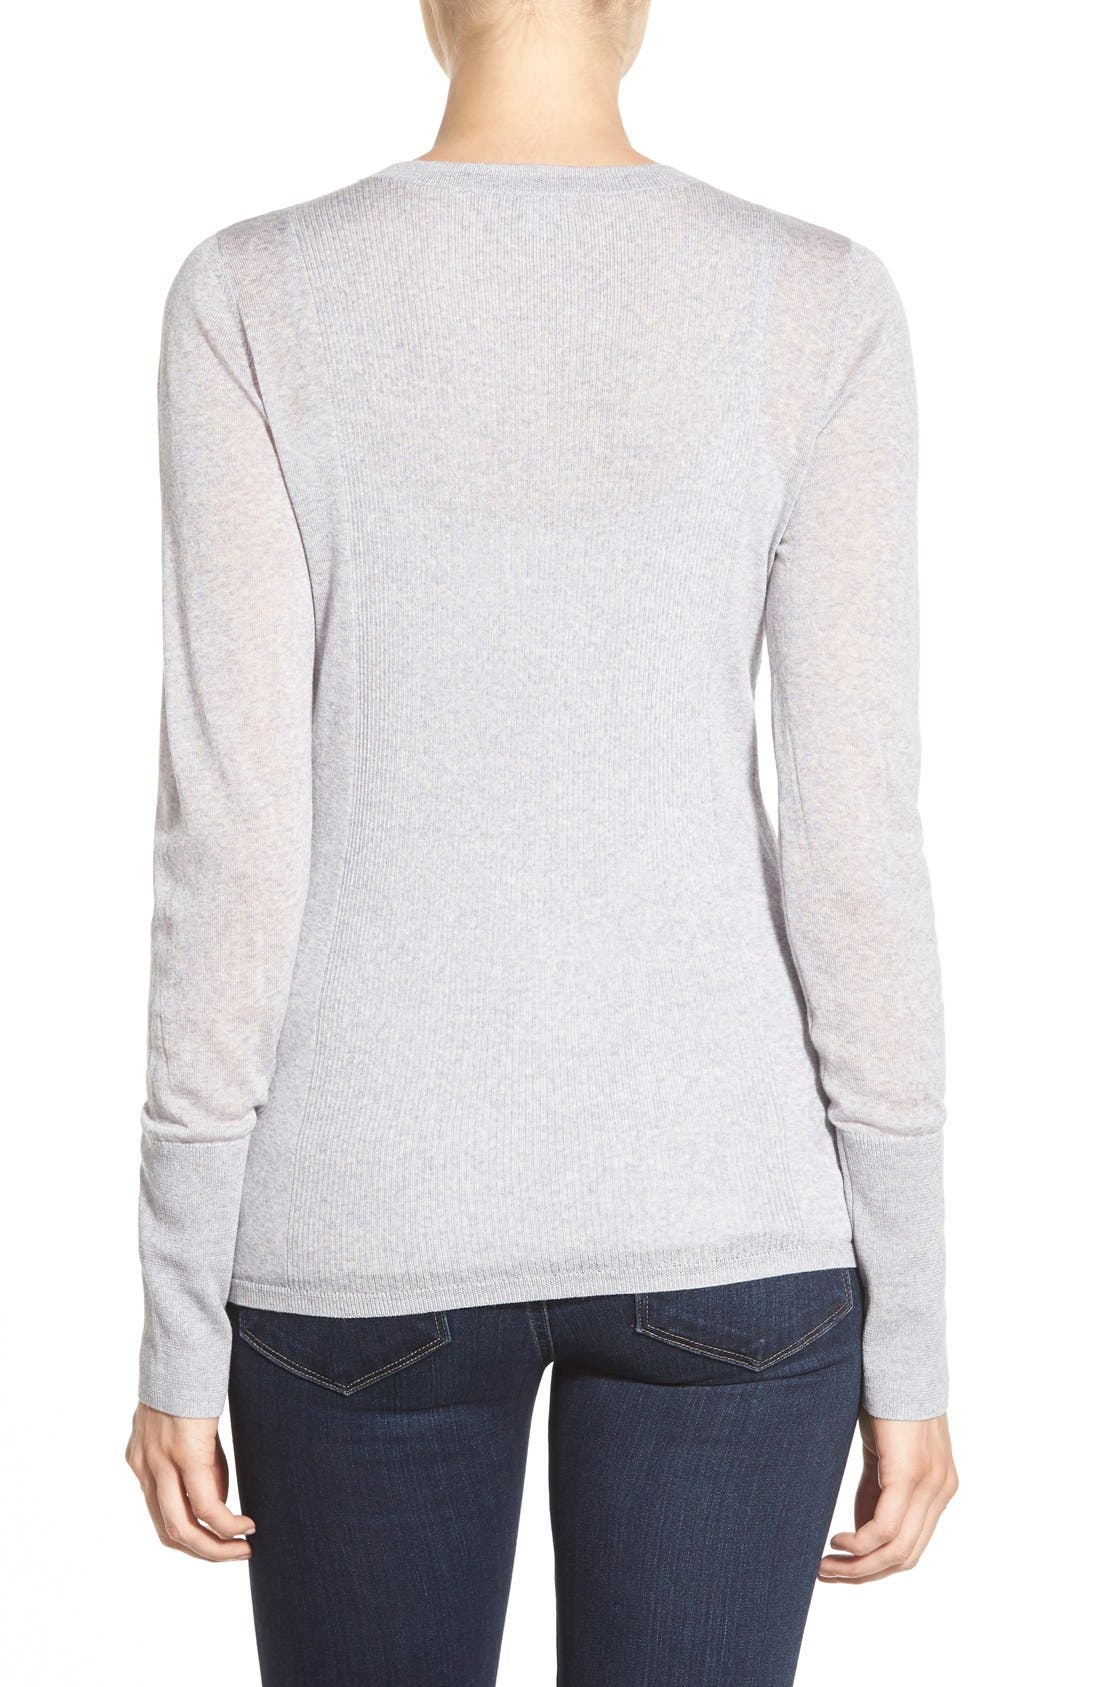 Alternate Image 2  - Halogen® Rib Detail Lightweight Merino Wool Sweater (Regular & Petite)